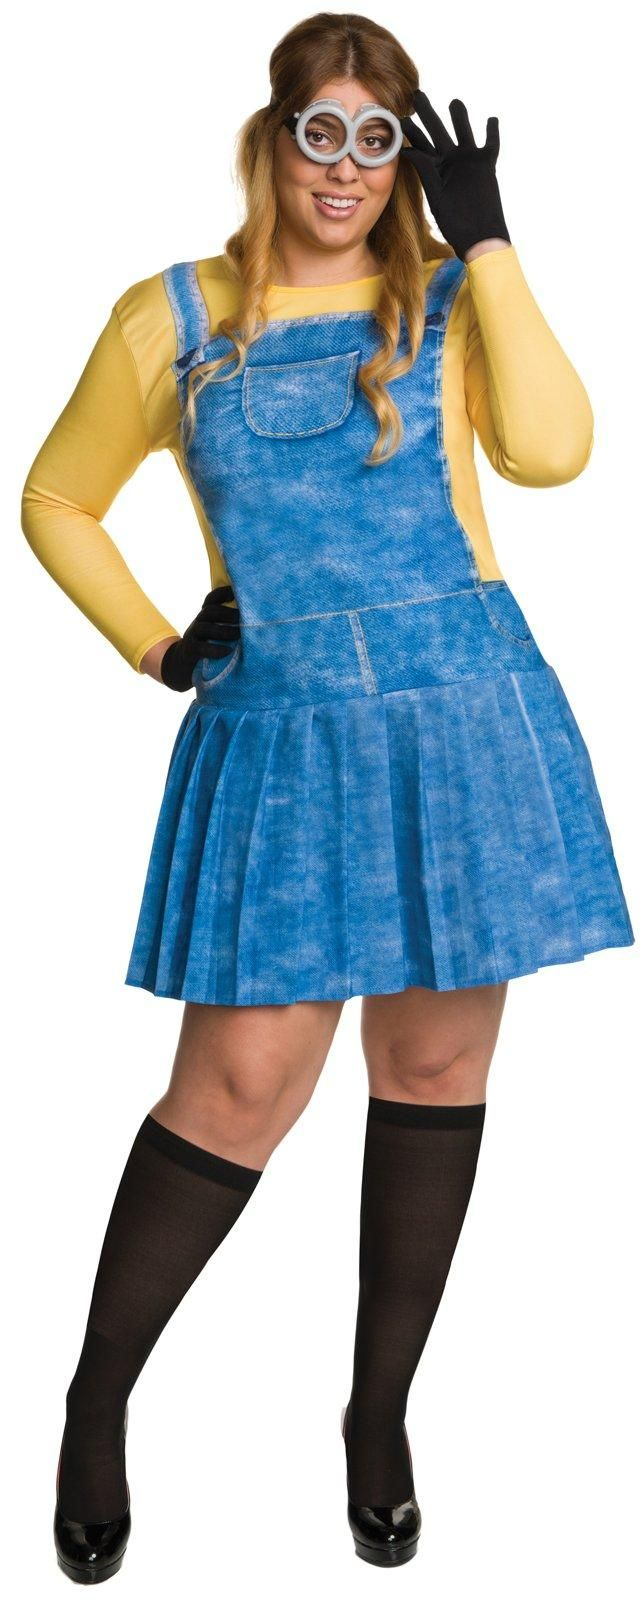 Minions Movie: Womens Plus Size Minion Costume from Buycostumes.com